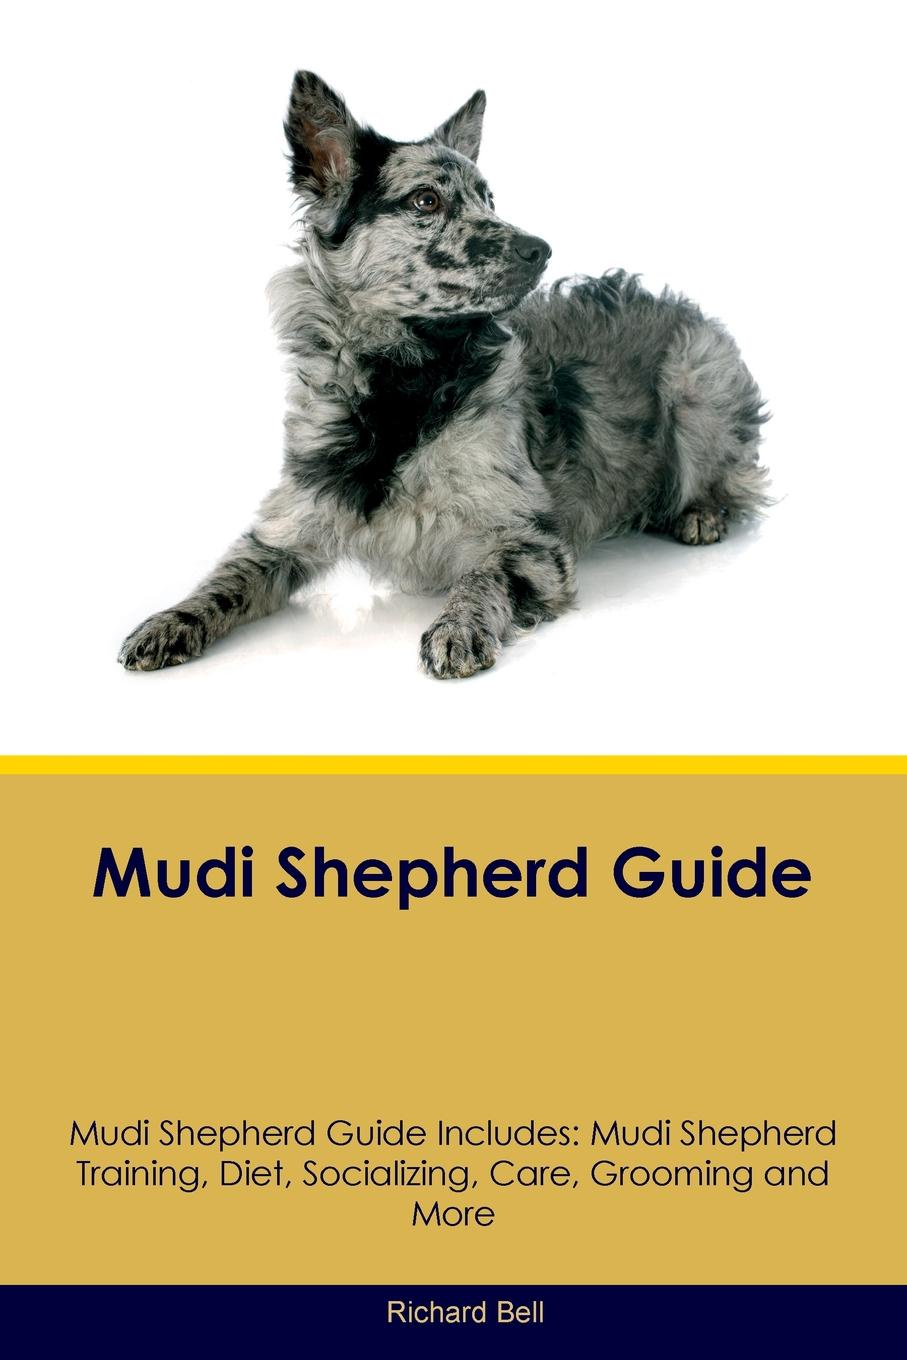 Richard Bell Mudi Shepherd Guide Includes. Training, Diet, Socializing, Care, Grooming, Breeding and More